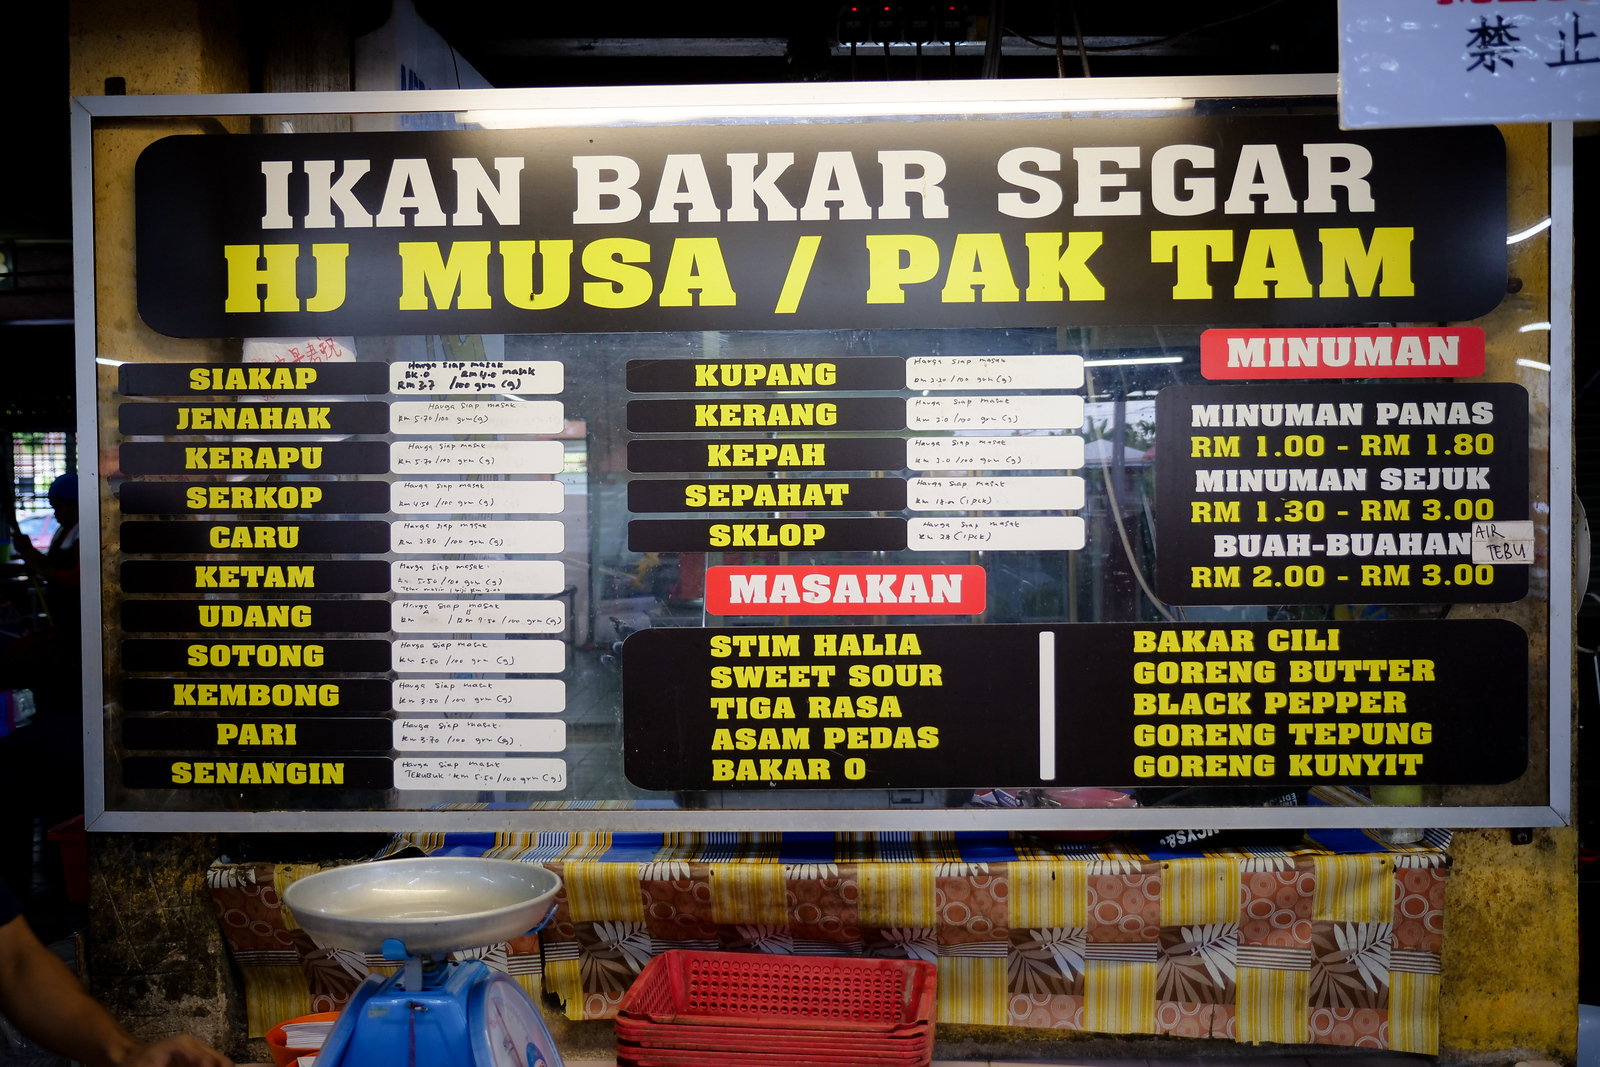 This is the menu at Ikan Bakar Hj Musa